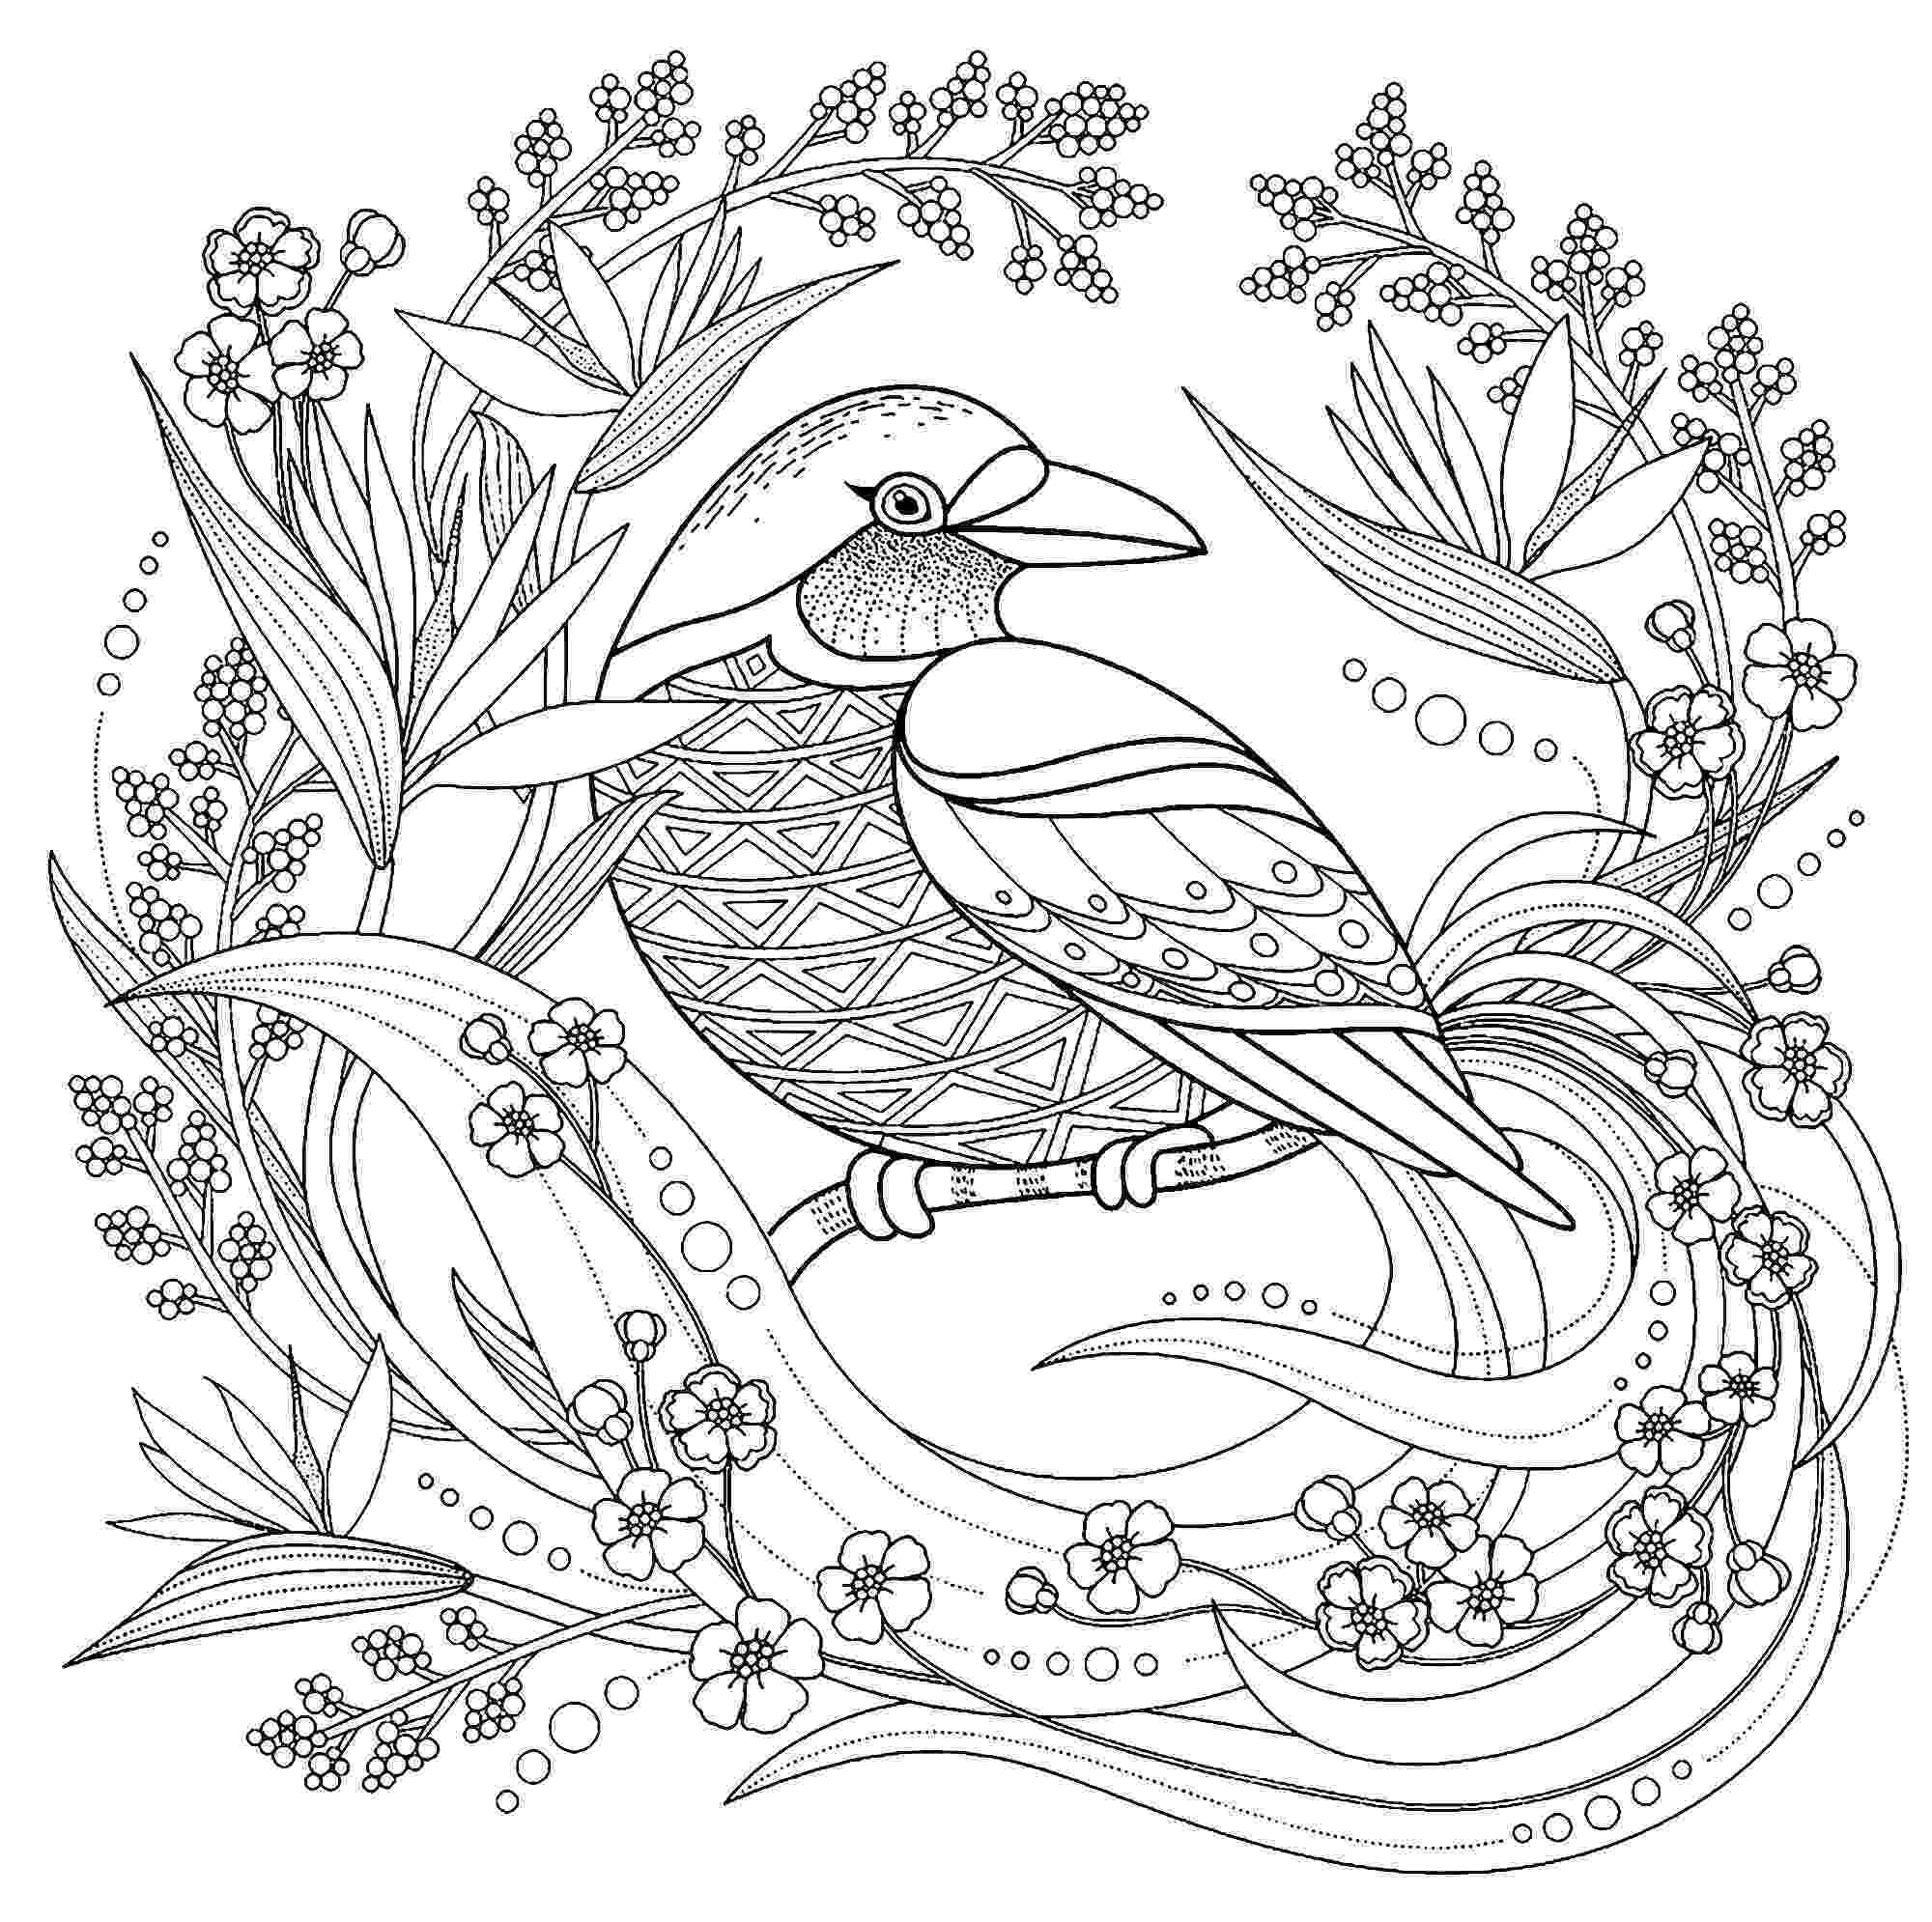 colouring picture bird bird coloring pages to download and print for free bird picture colouring